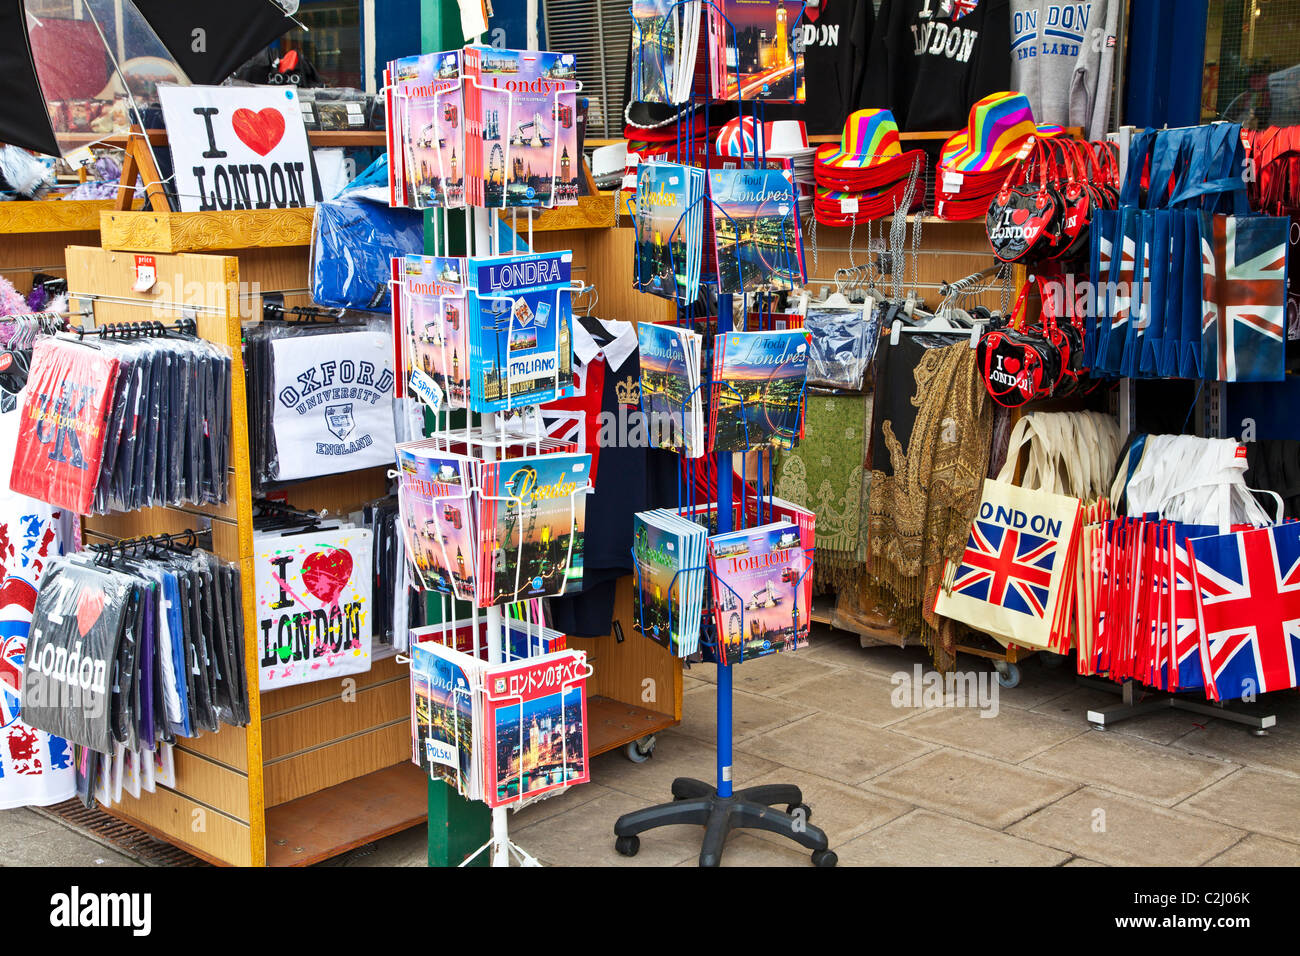 Display of souvenirs,memorabilia and gifts of England and London outside a shop in Windsor, Berkshire, England, - Stock Image